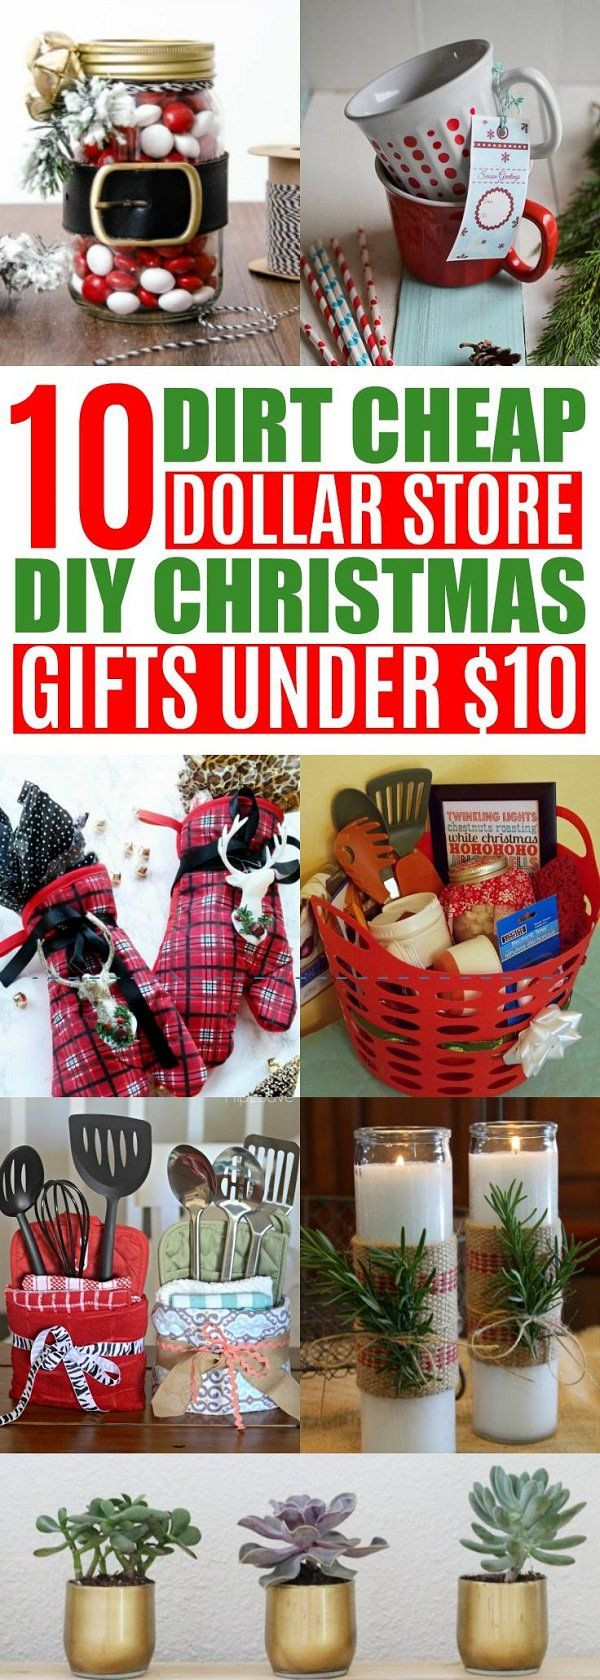 Best ideas about $10 Christmas Gift Ideas . Save or Pin 25 unique fice christmas ts ideas on Pinterest Now.